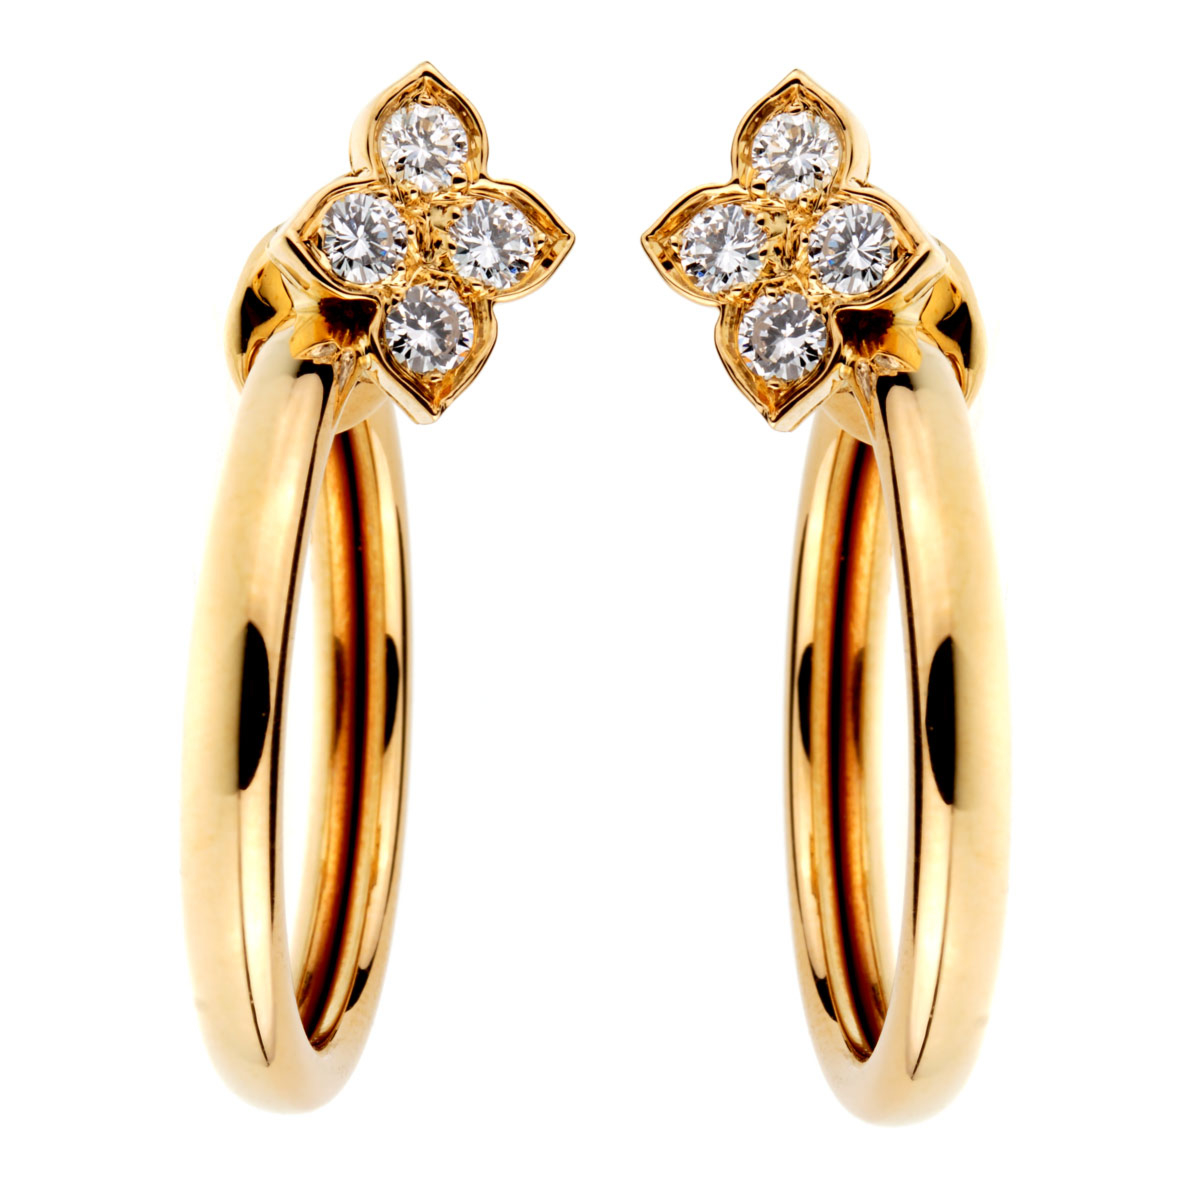 Cartier Flower Hoop Diamond 18kt Yellow Gold Earrings - Cartier Jewelry